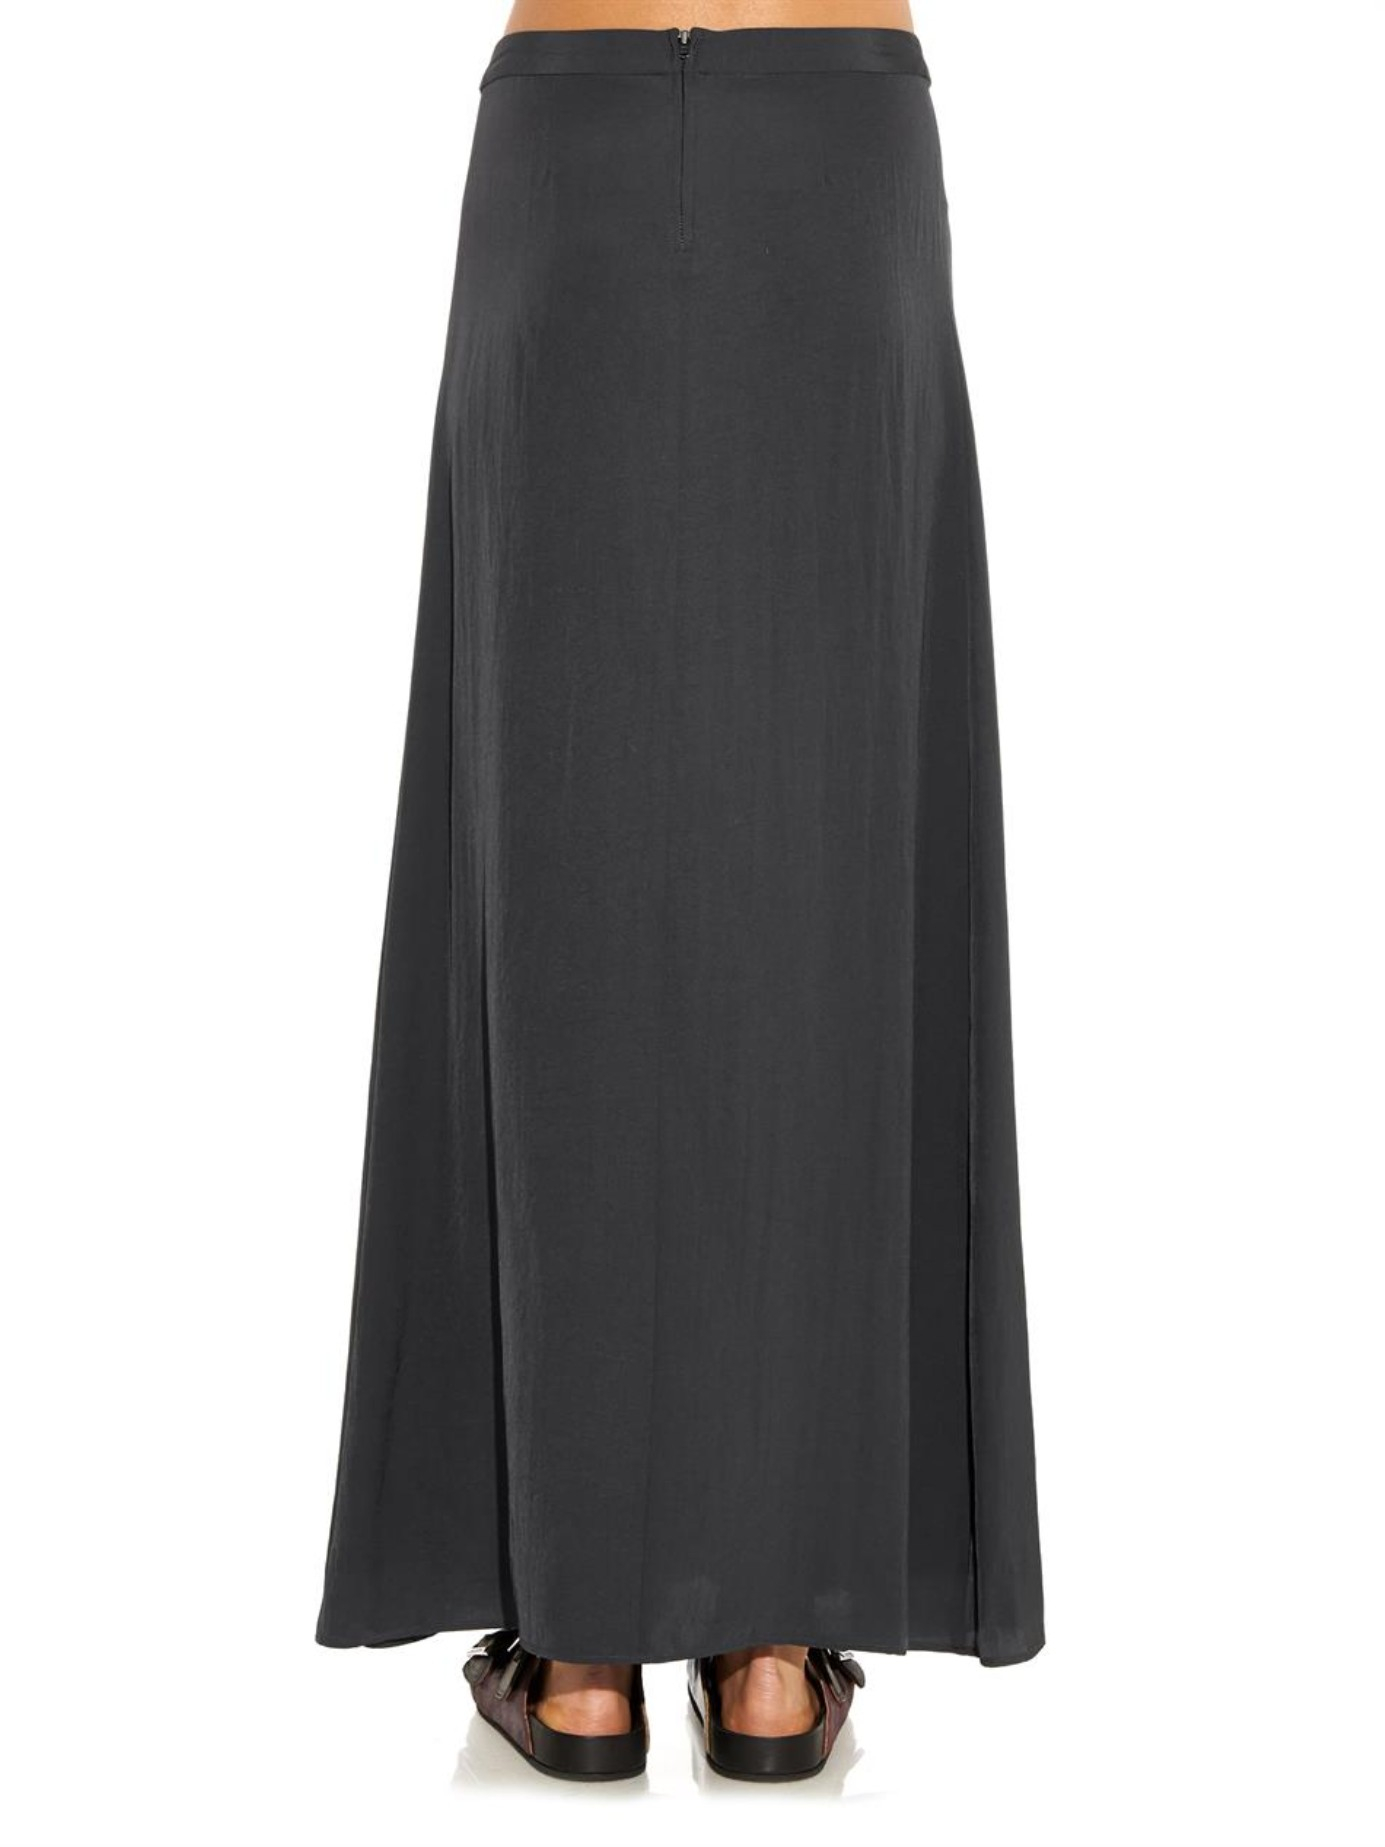 Étoile isabel marant Fleming Maxi Skirt in Gray | Lyst